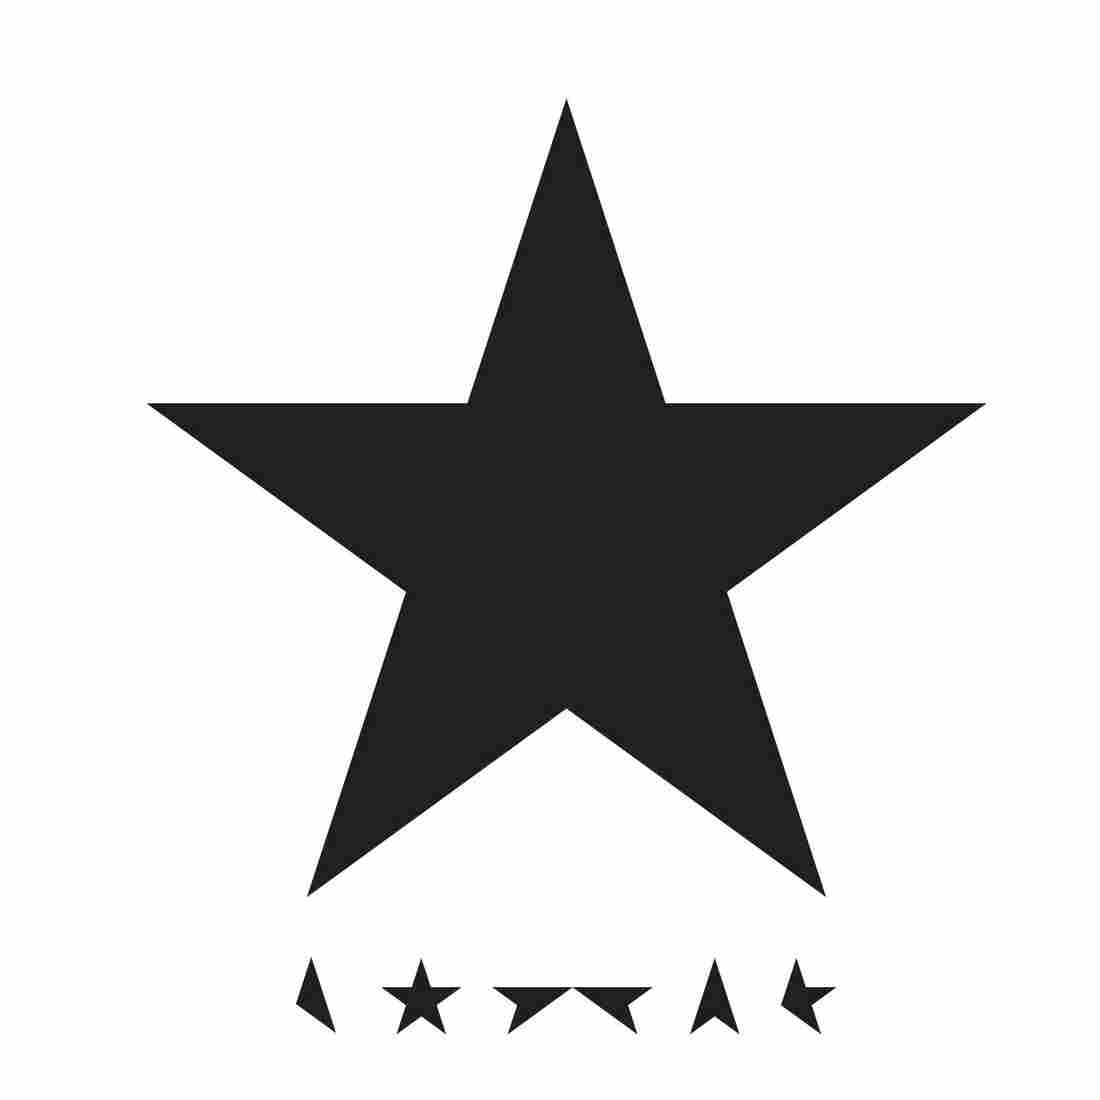 The cover of David Bowie's album Blackstar.